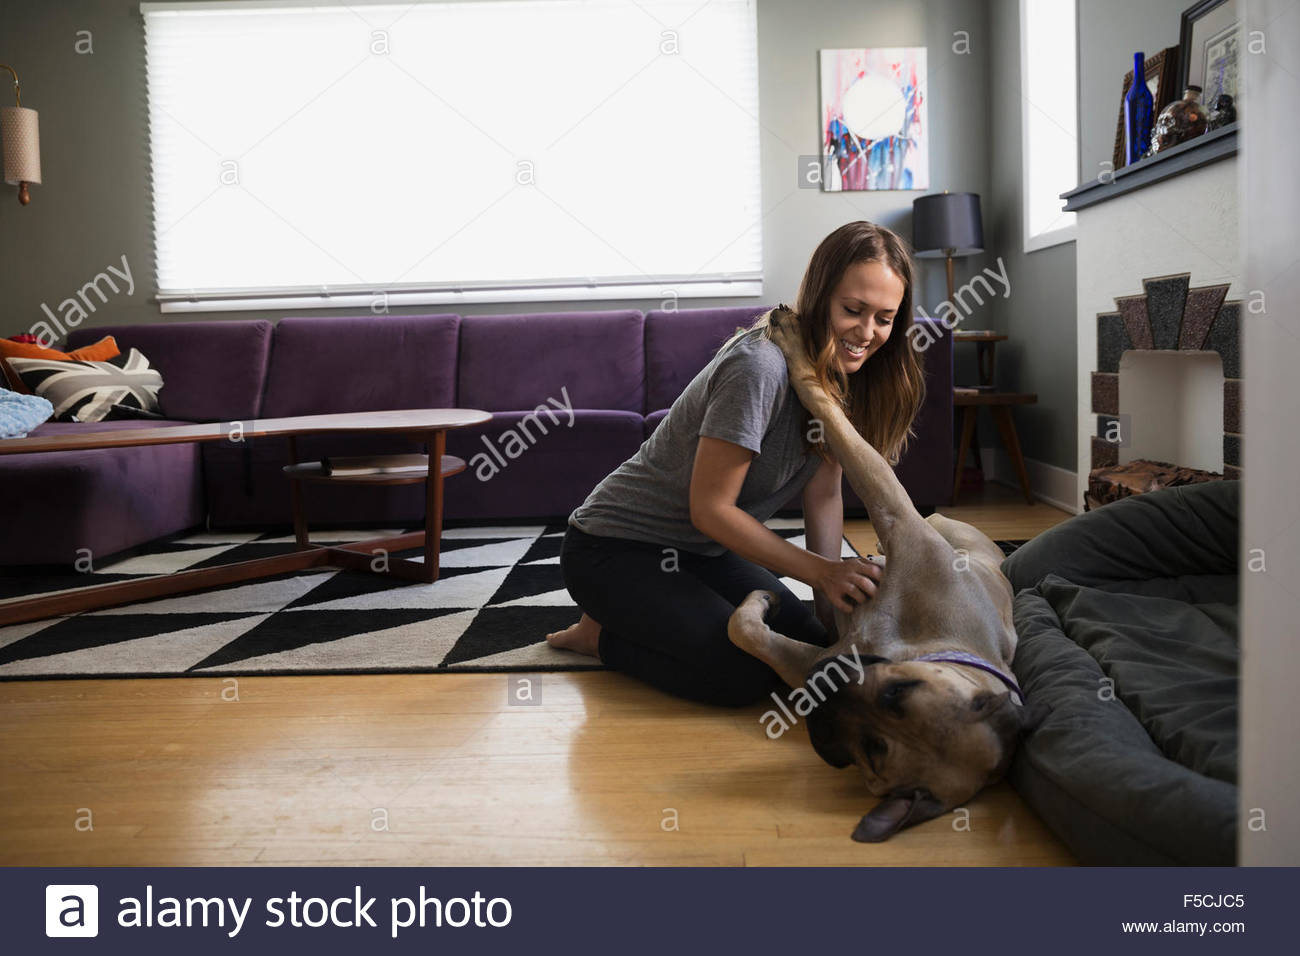 Woman scratching dog's belly on living room floor - Stock Image